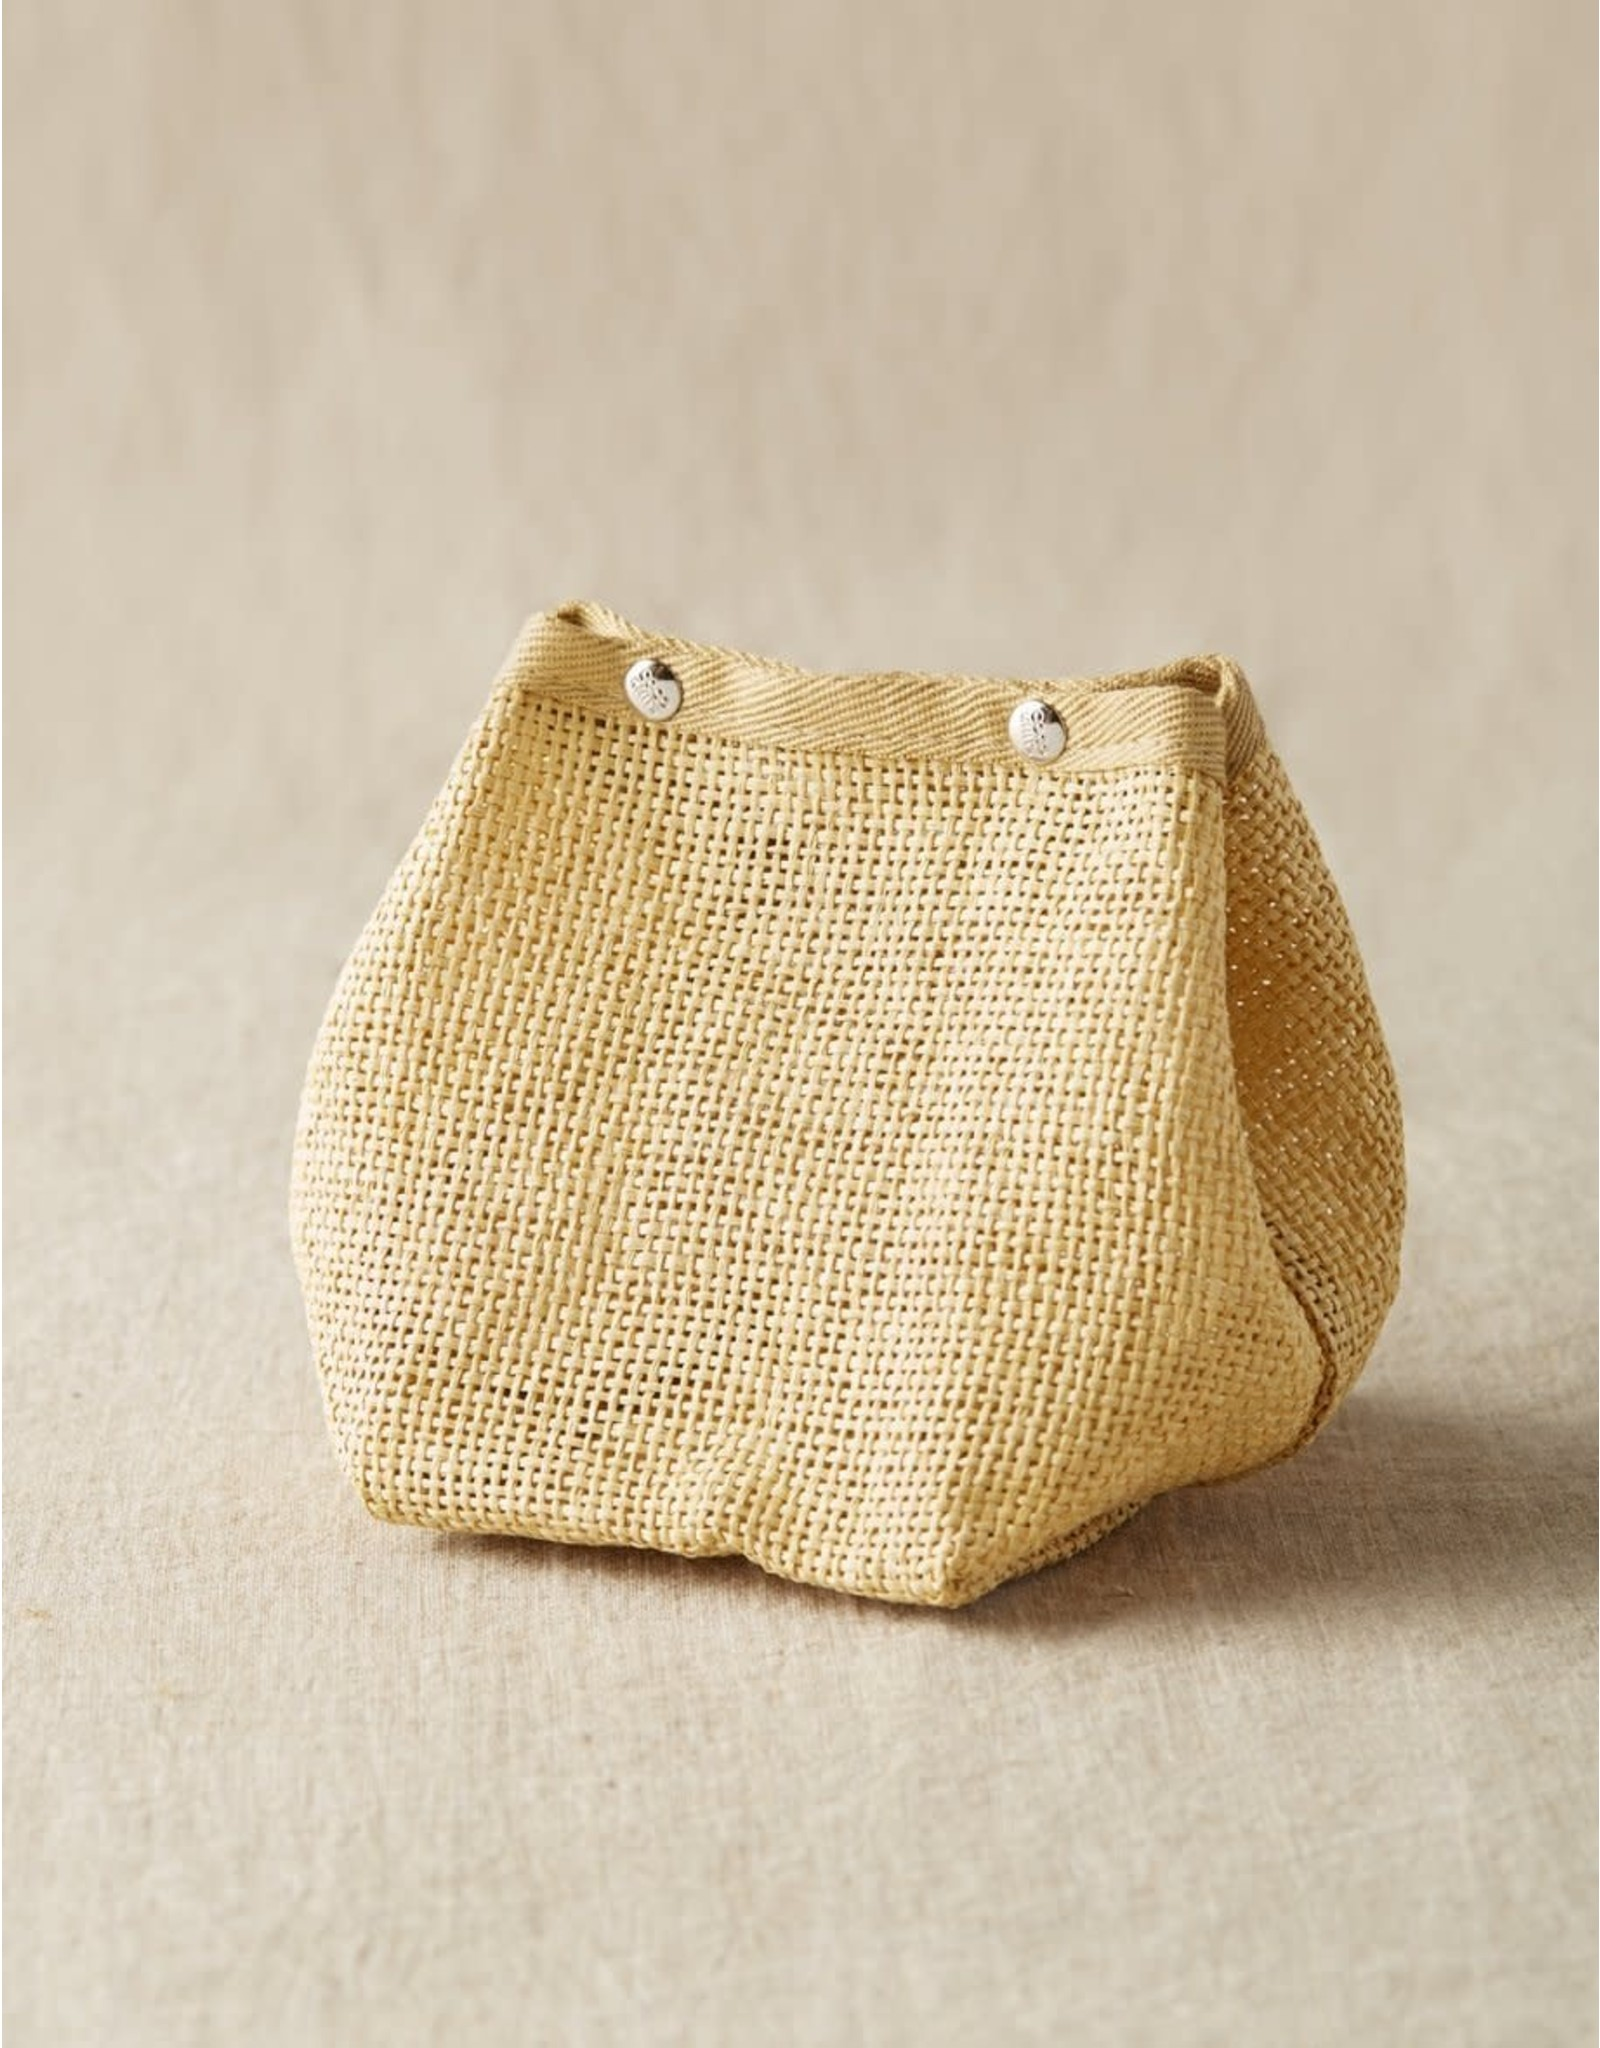 Small Mesh Bag by Cocoknits